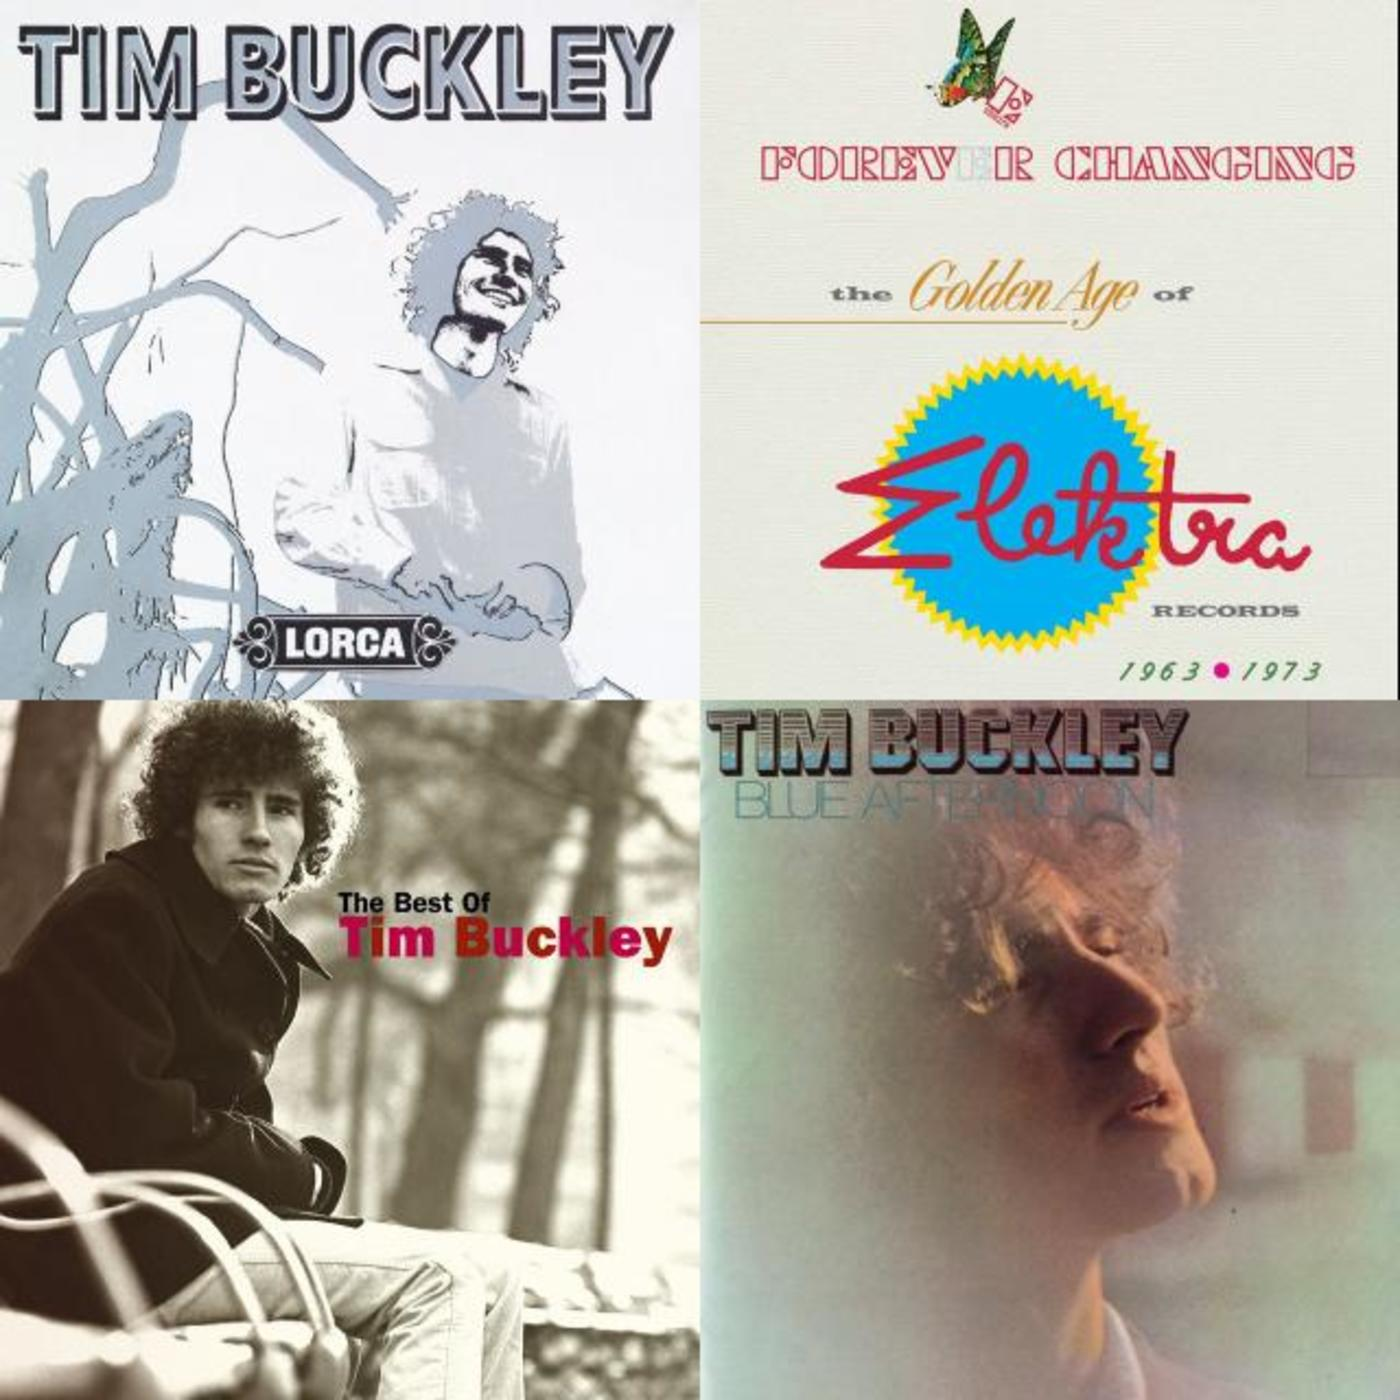 Remembering Tim Buckley